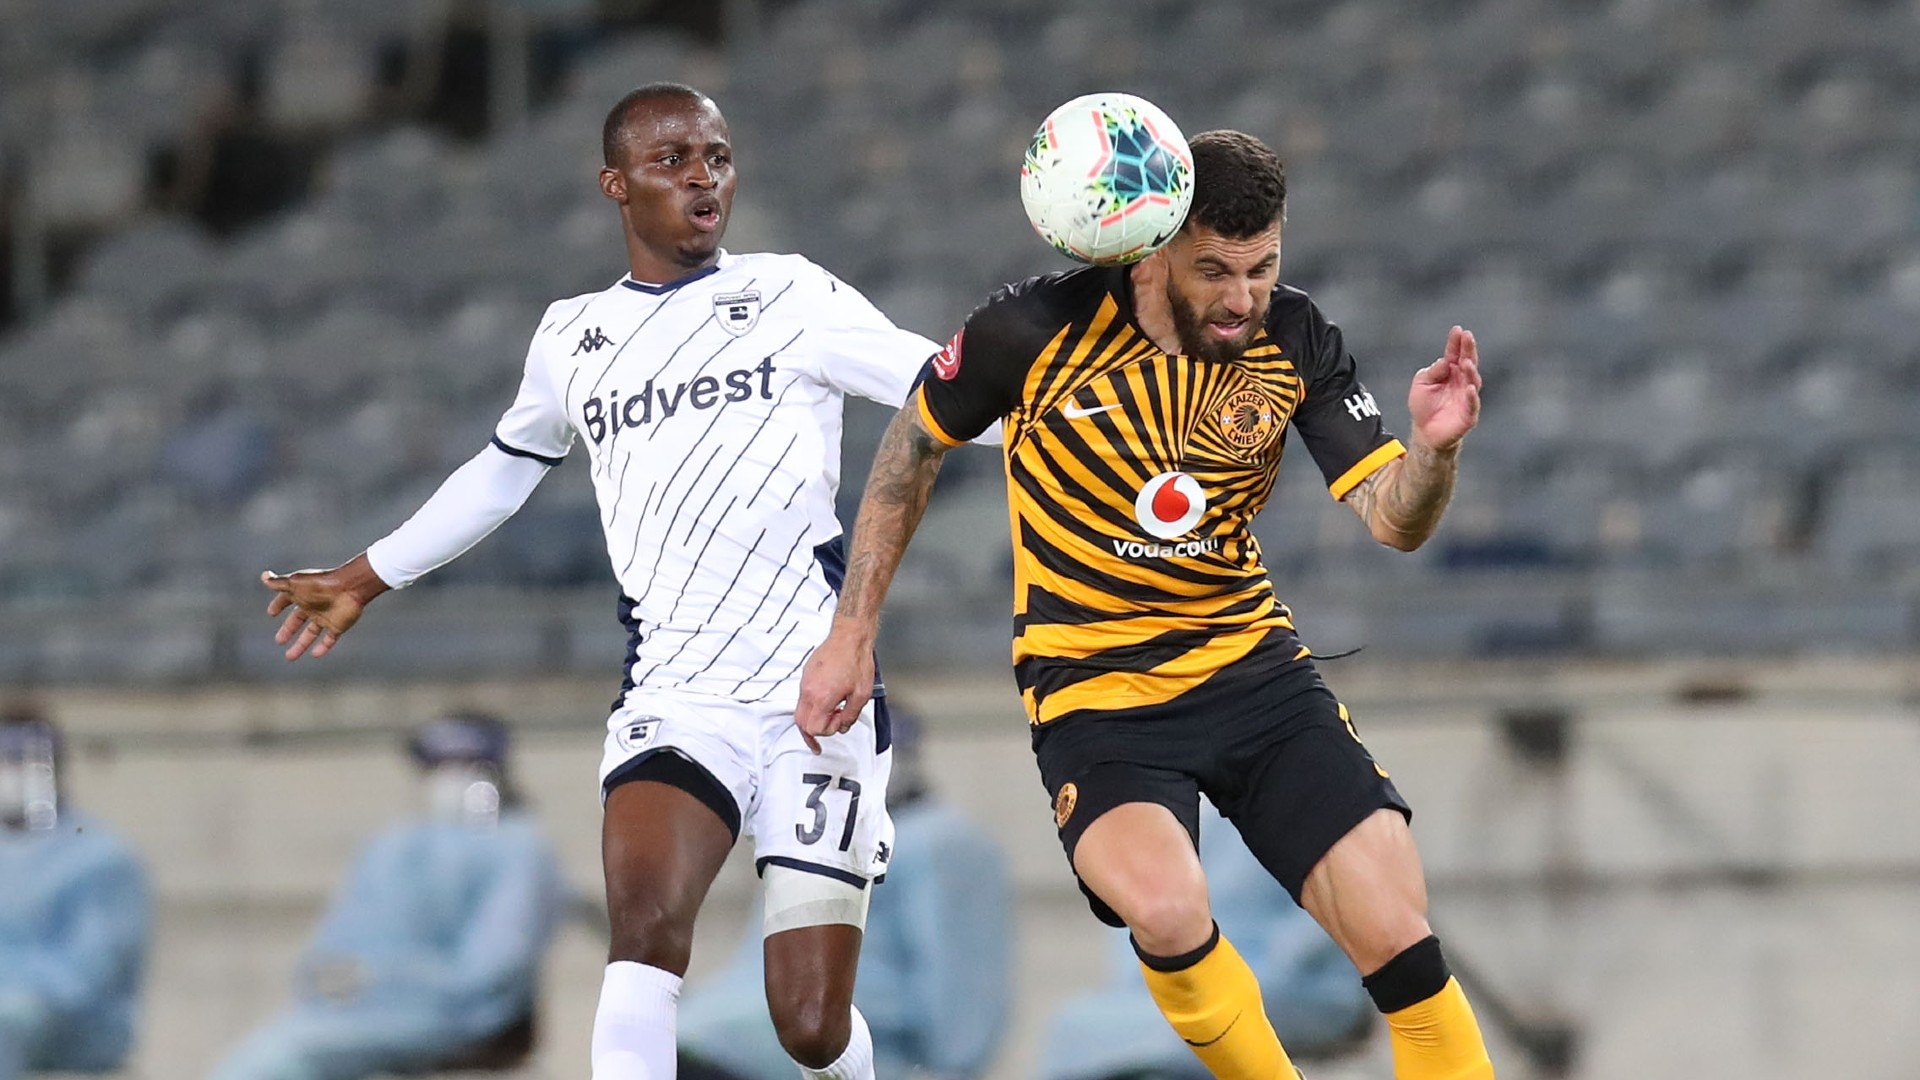 Kaizer Chiefs 1-1 Bidvest Wits: Amakhosi miss opportunity to extend gap over Mamelodi Sundowns